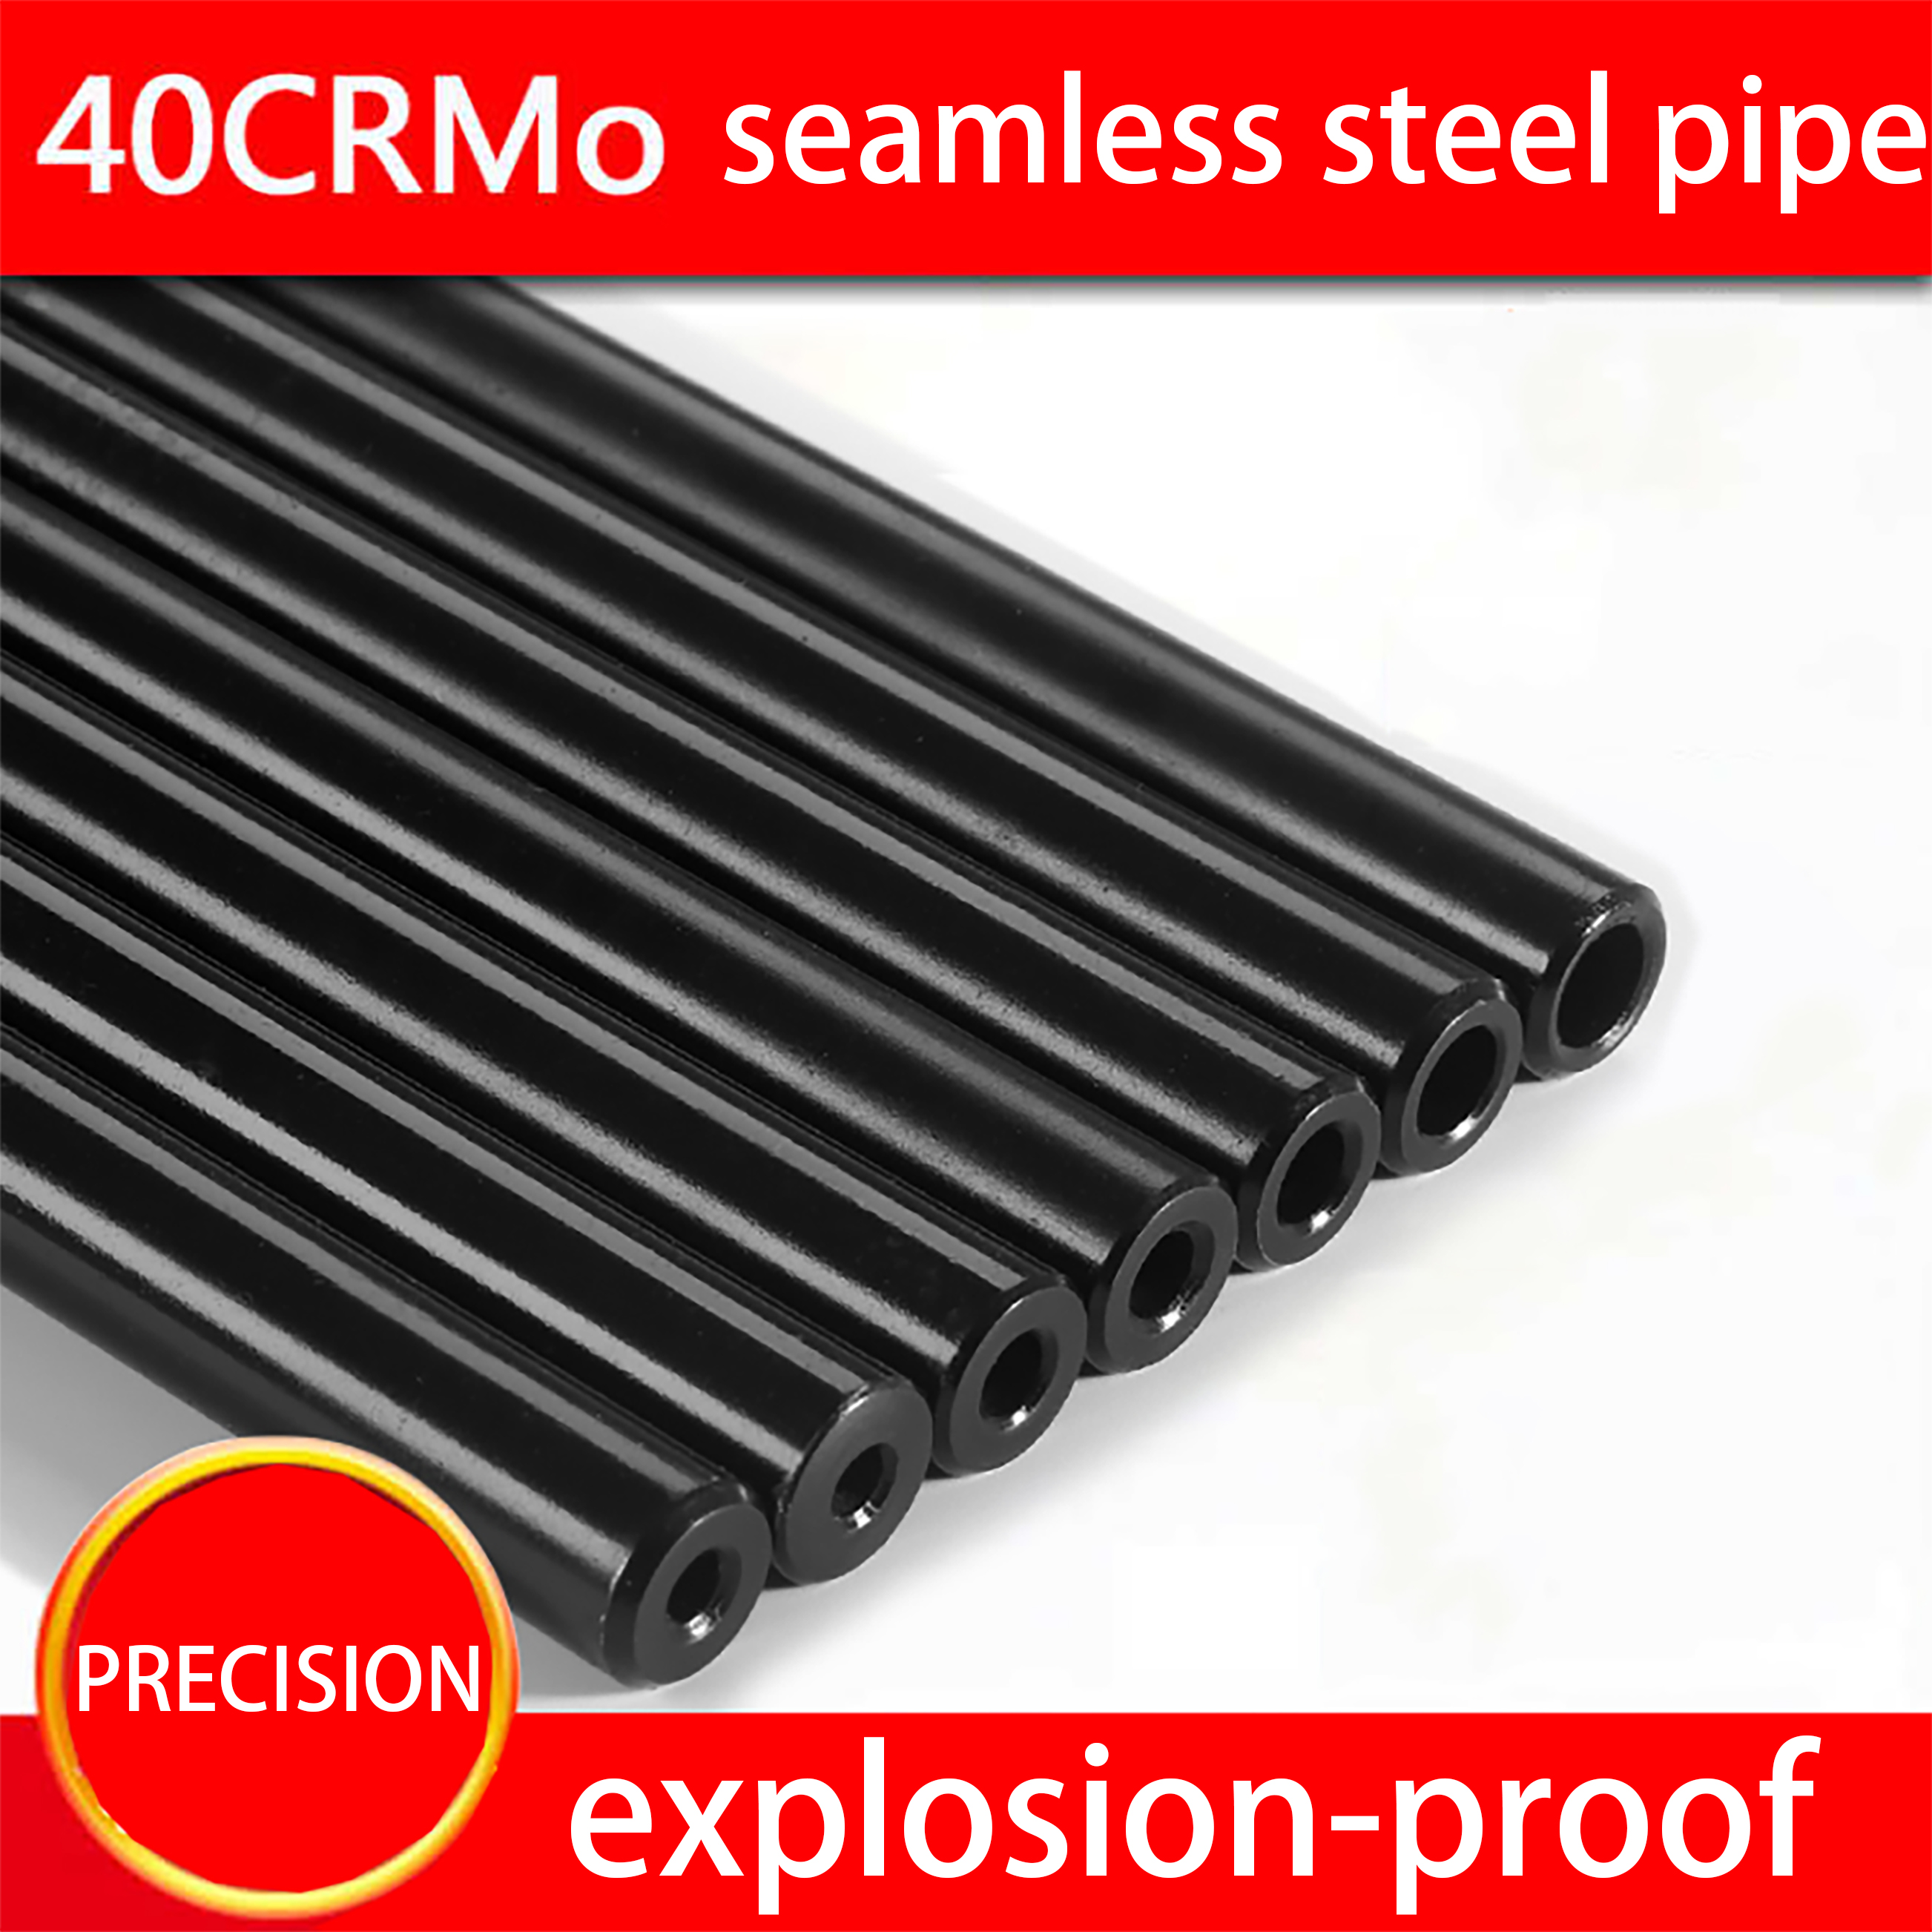 18mm O/D Hydraulic Alloy Precision Steel Pipe Boiler Explosion-proof DIY Steel Pipe O/D 18mm